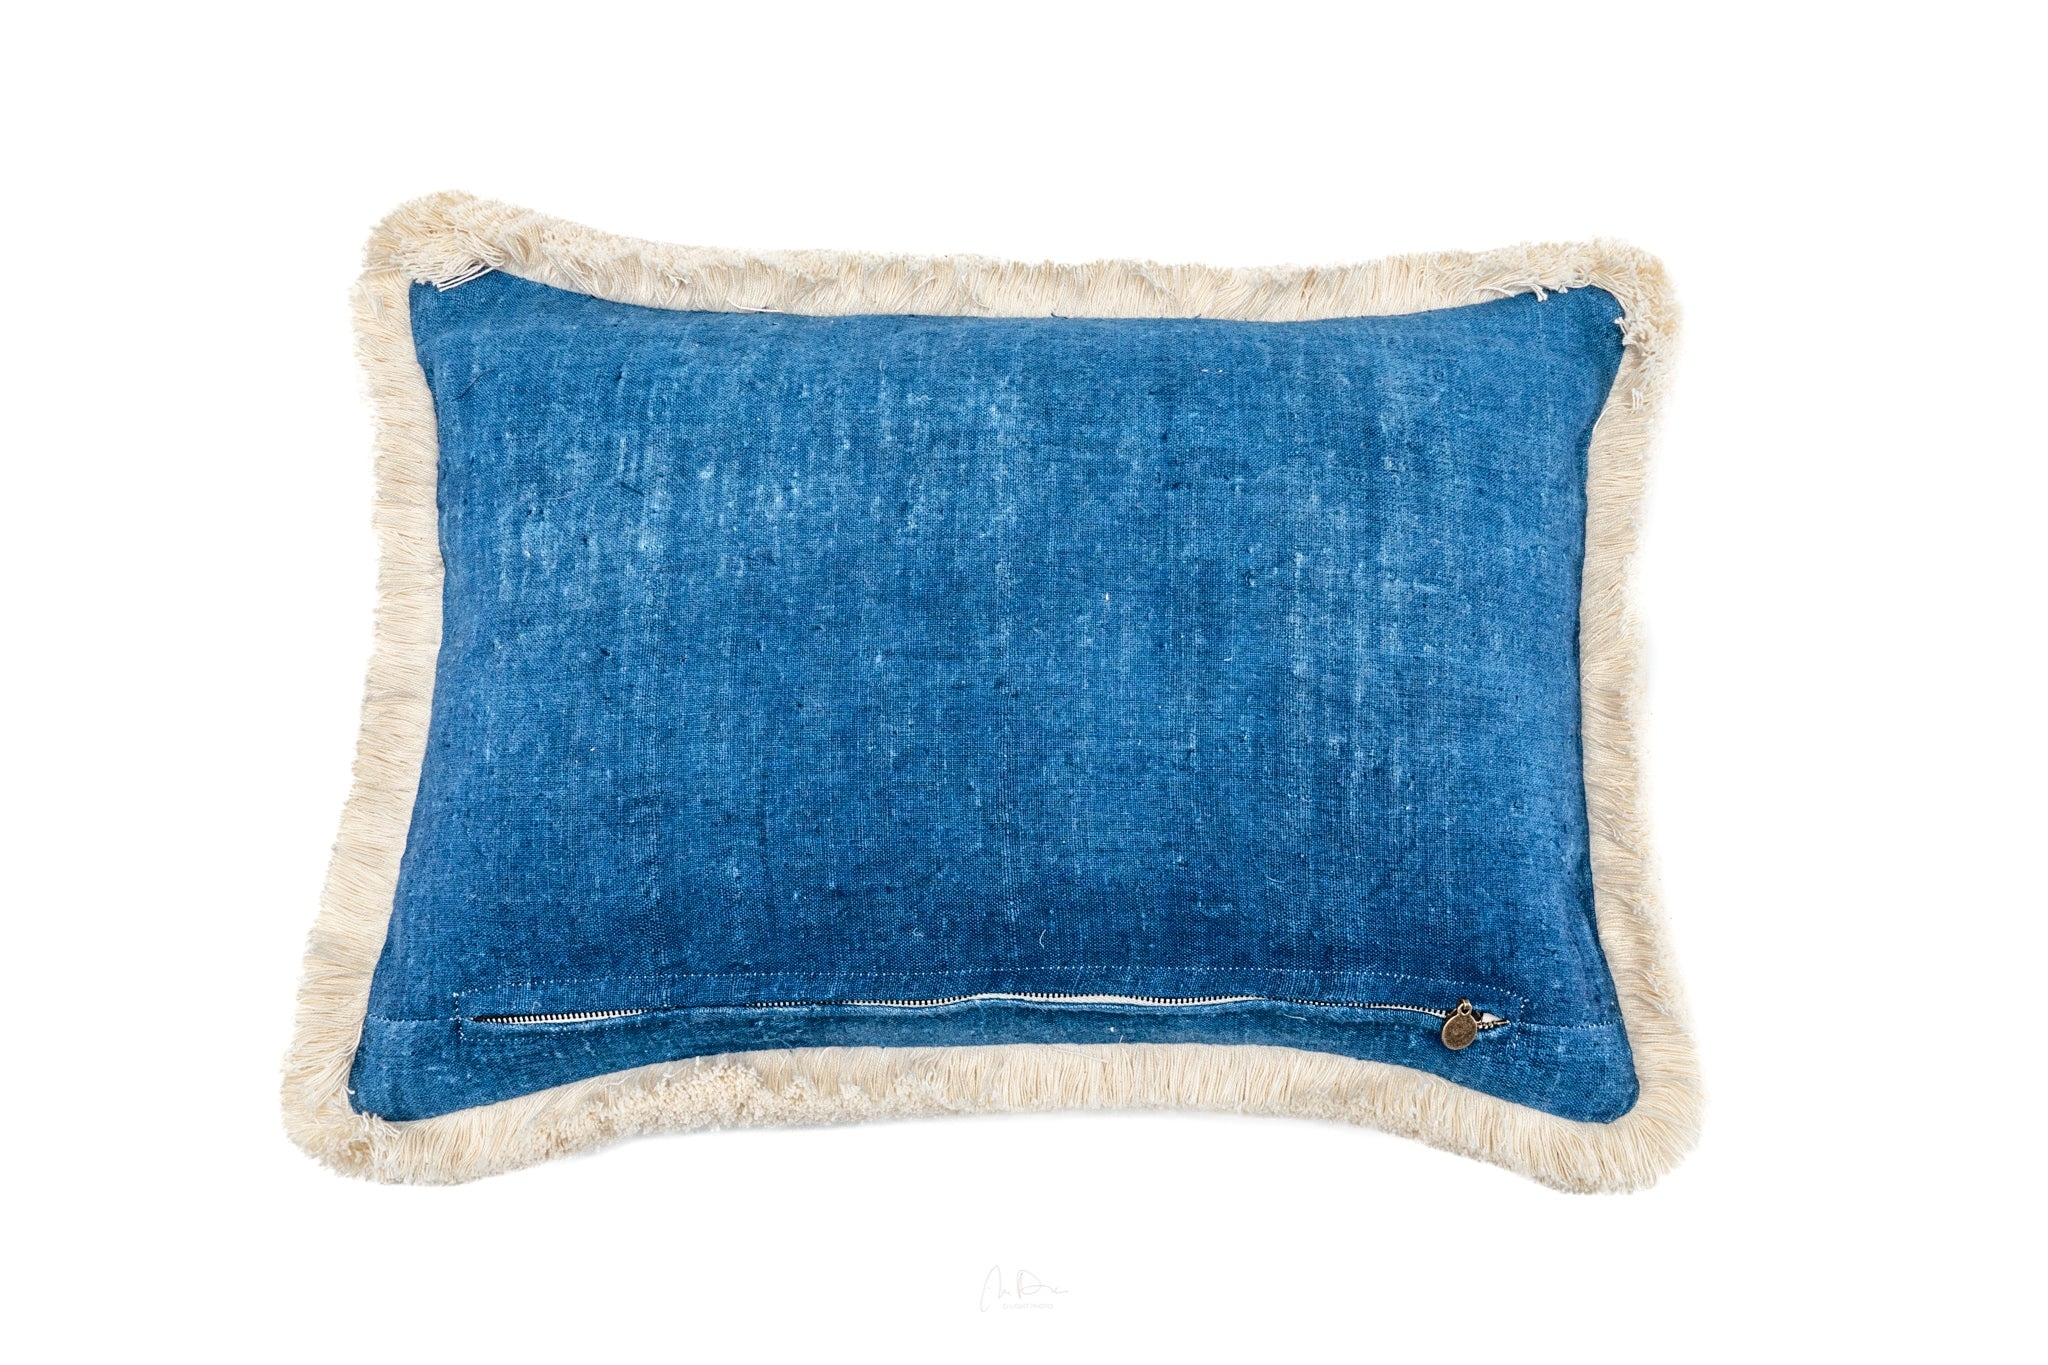 Pillow: Handwoven antique Bulgarian cotton